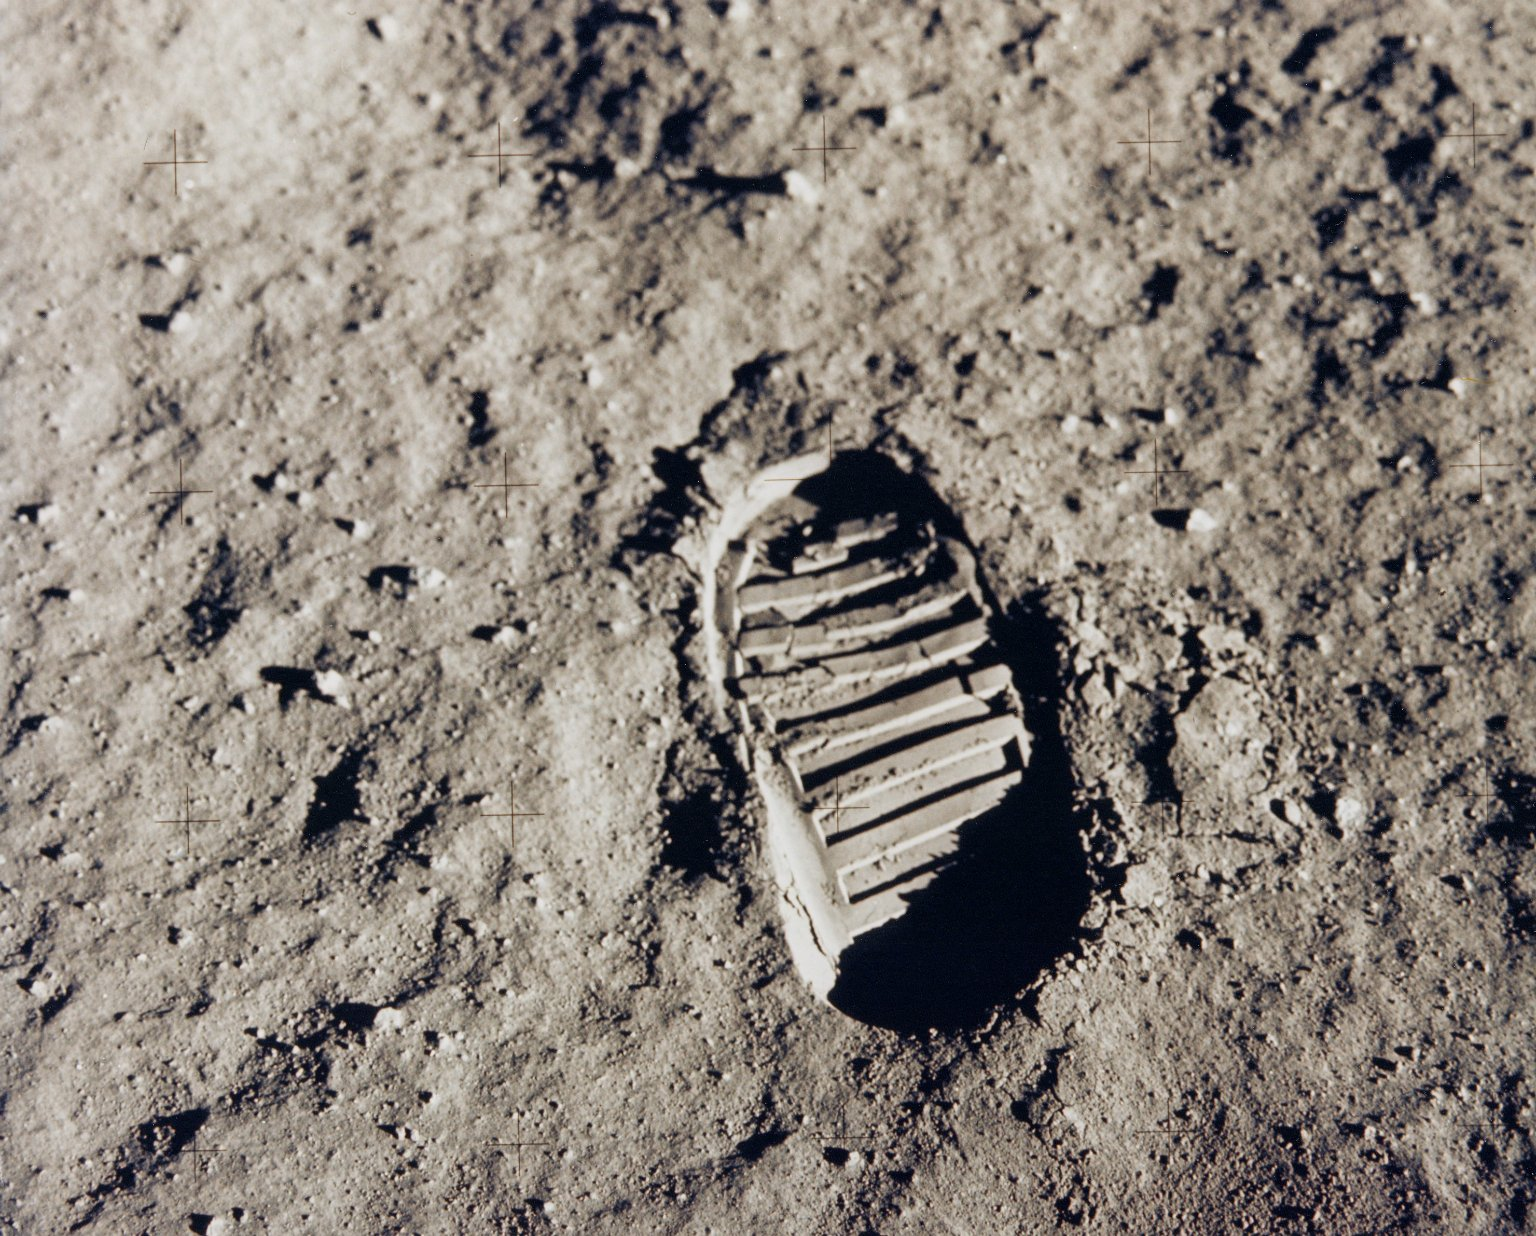 Footprint on the moon-1.jpg